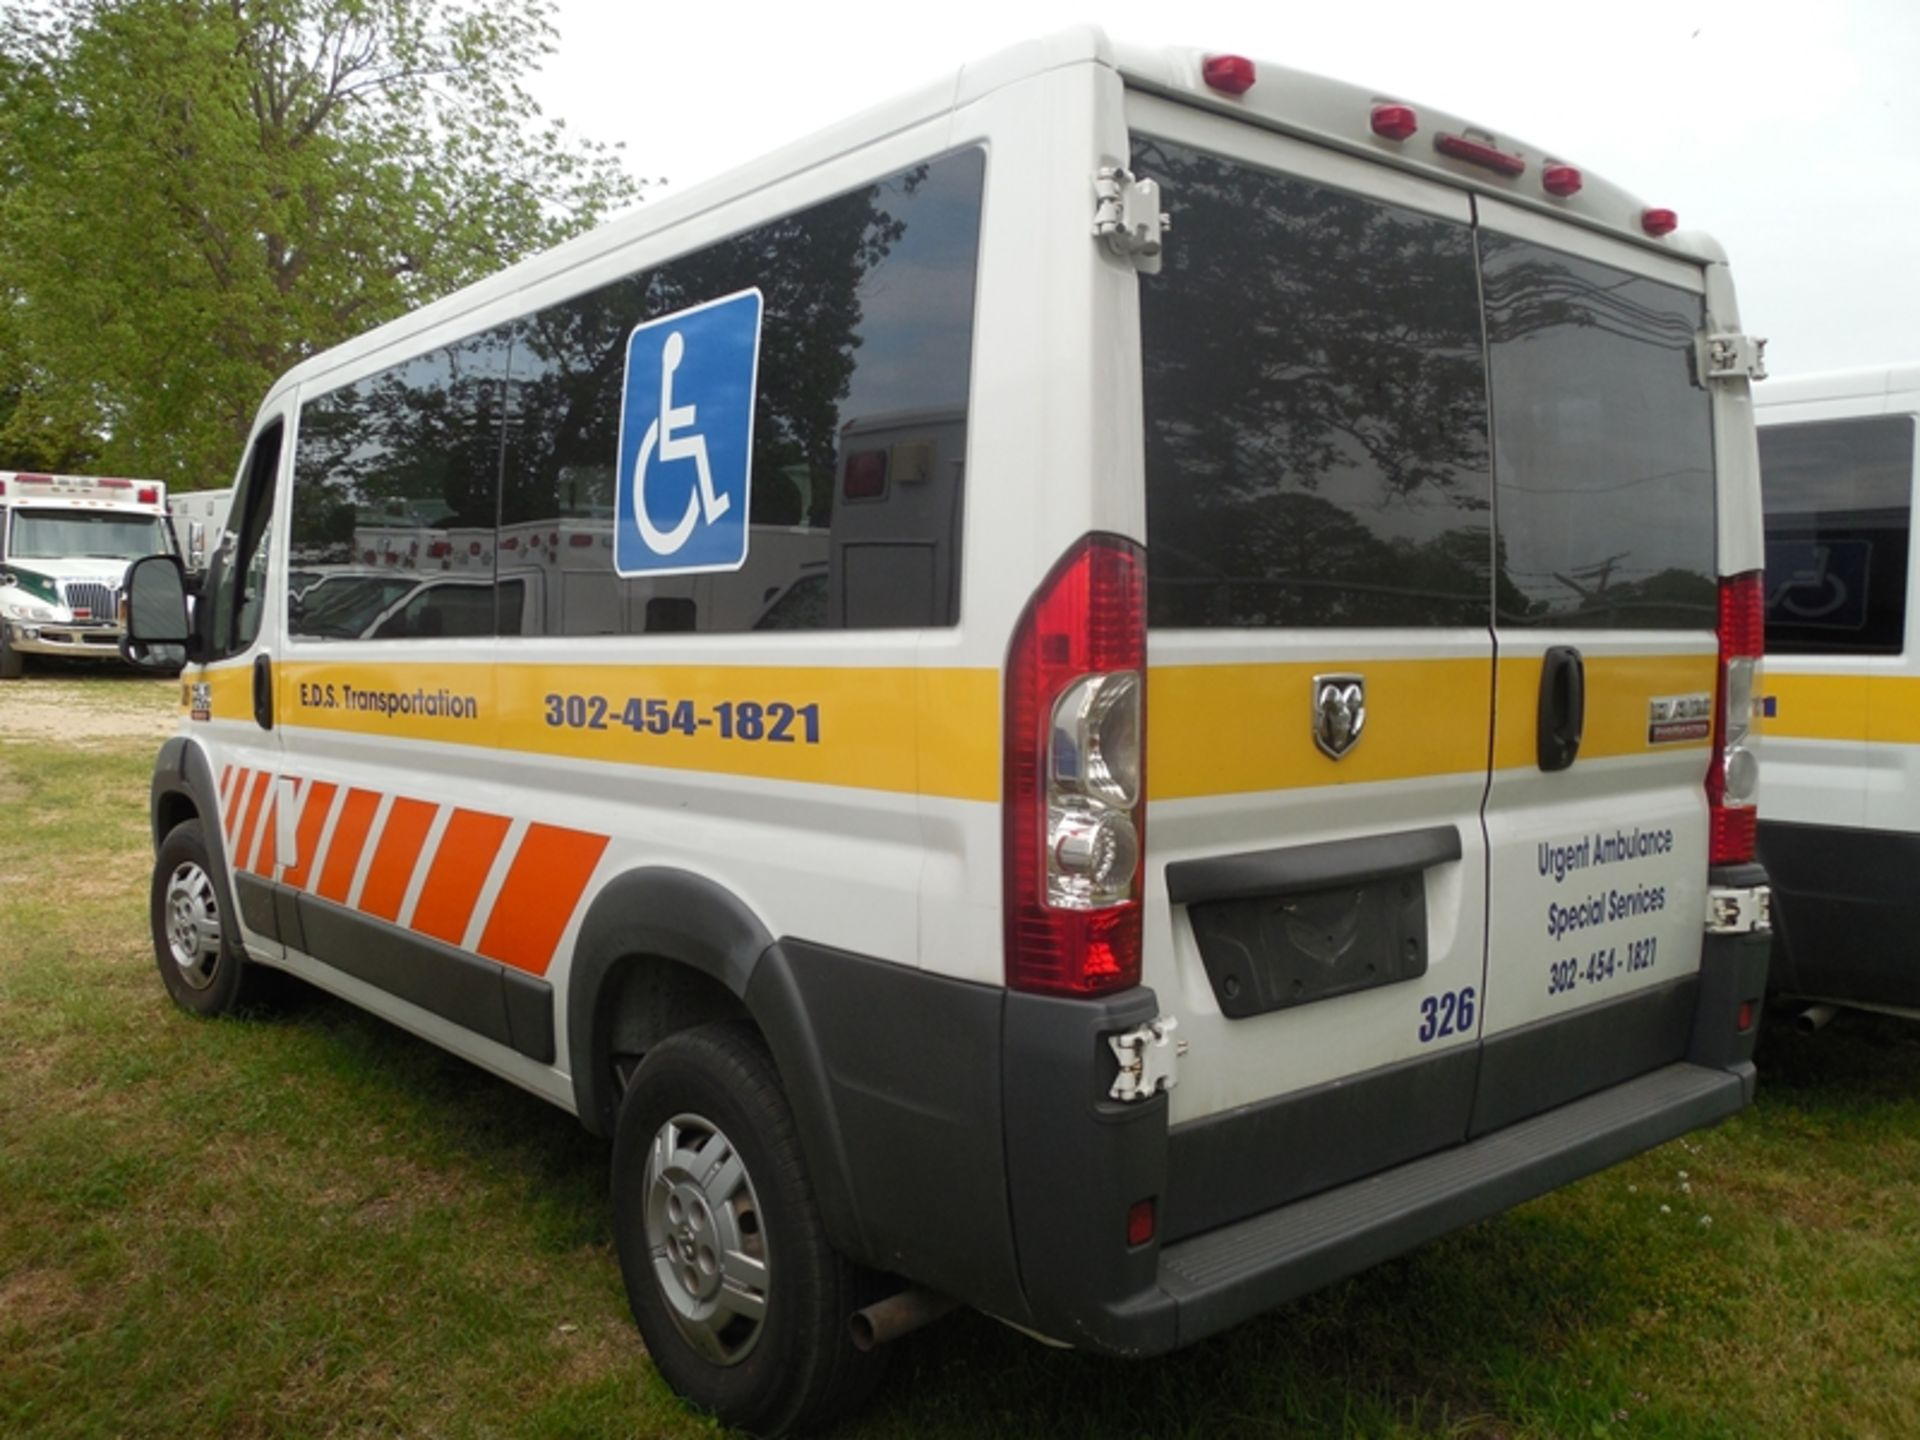 2014 Dodge Promaster wheel chair van - Image 3 of 6